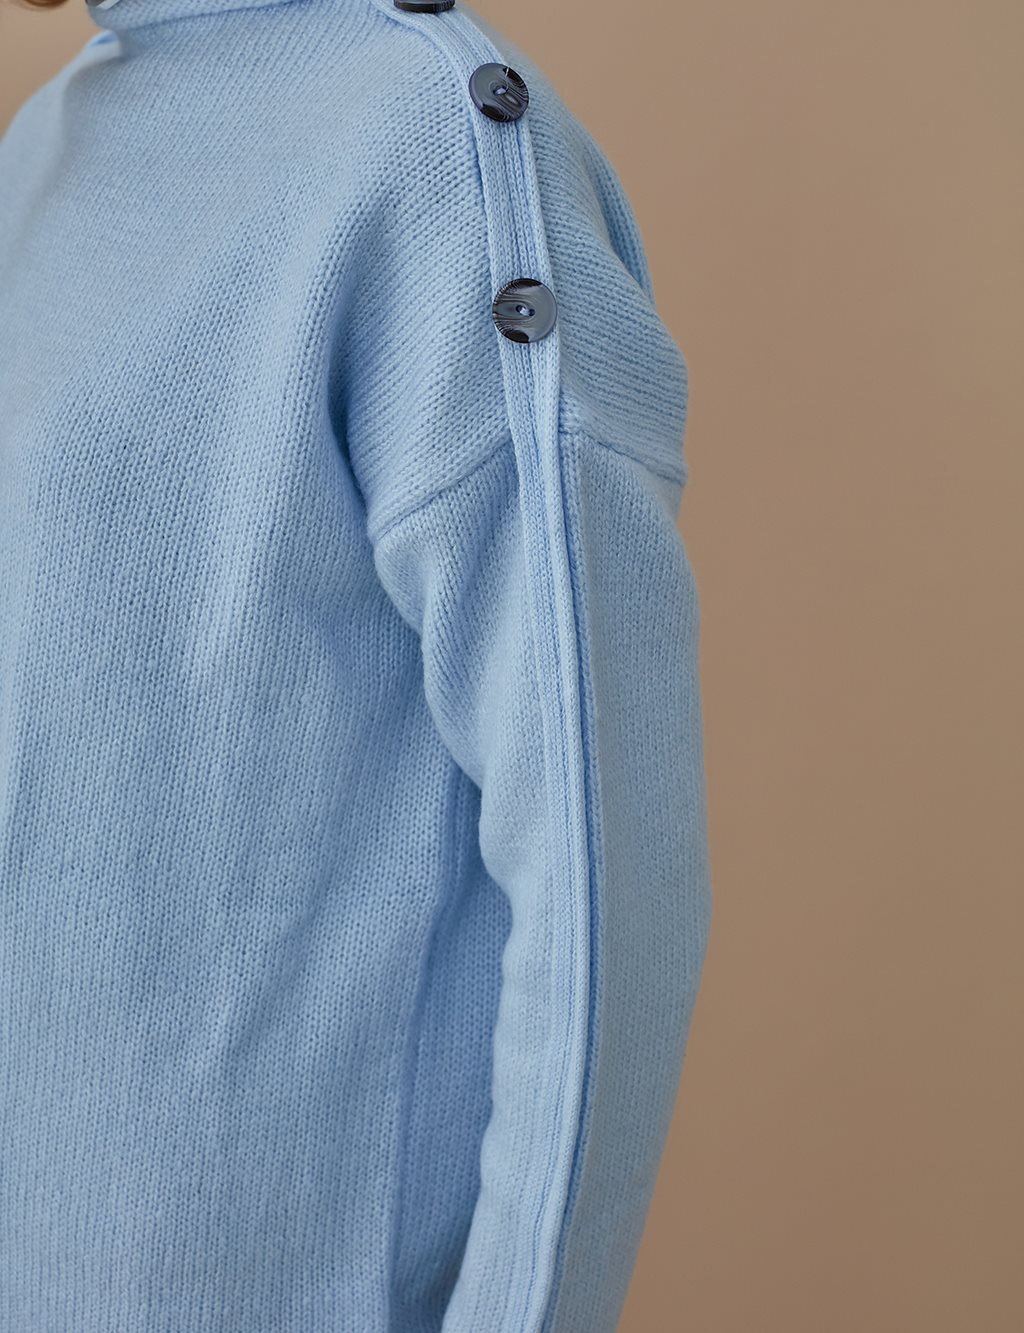 Knitwear With Button Detail A9 TRK17 Blue